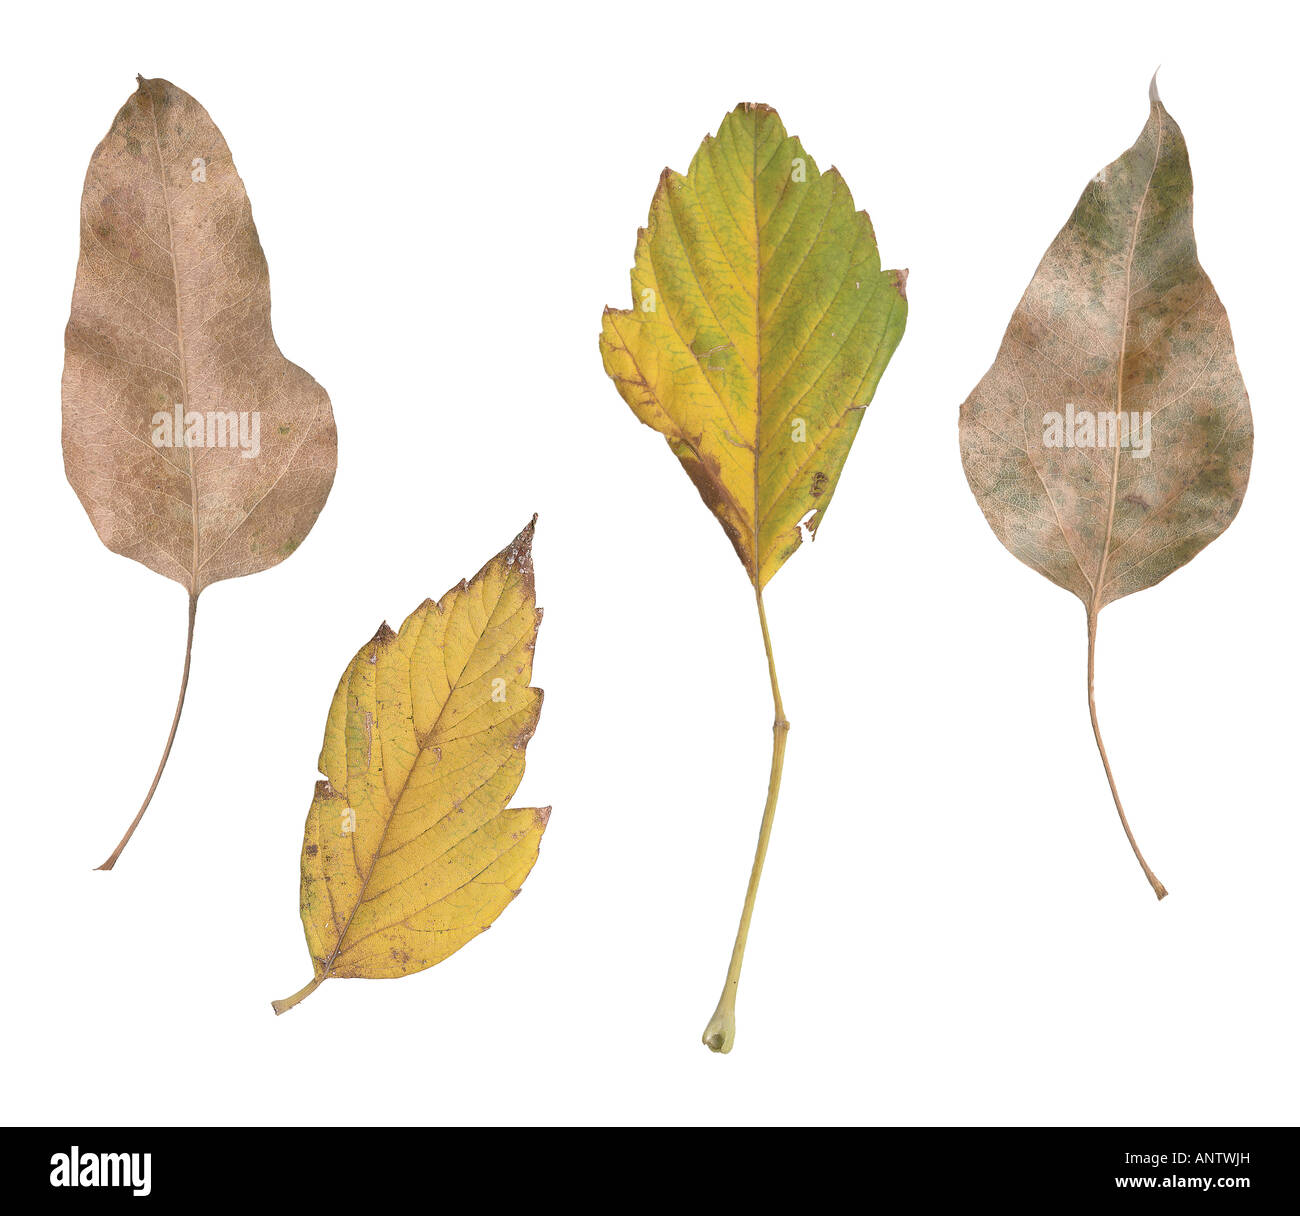 four fall leaves from varius palnts isolated on white background - Stock Image